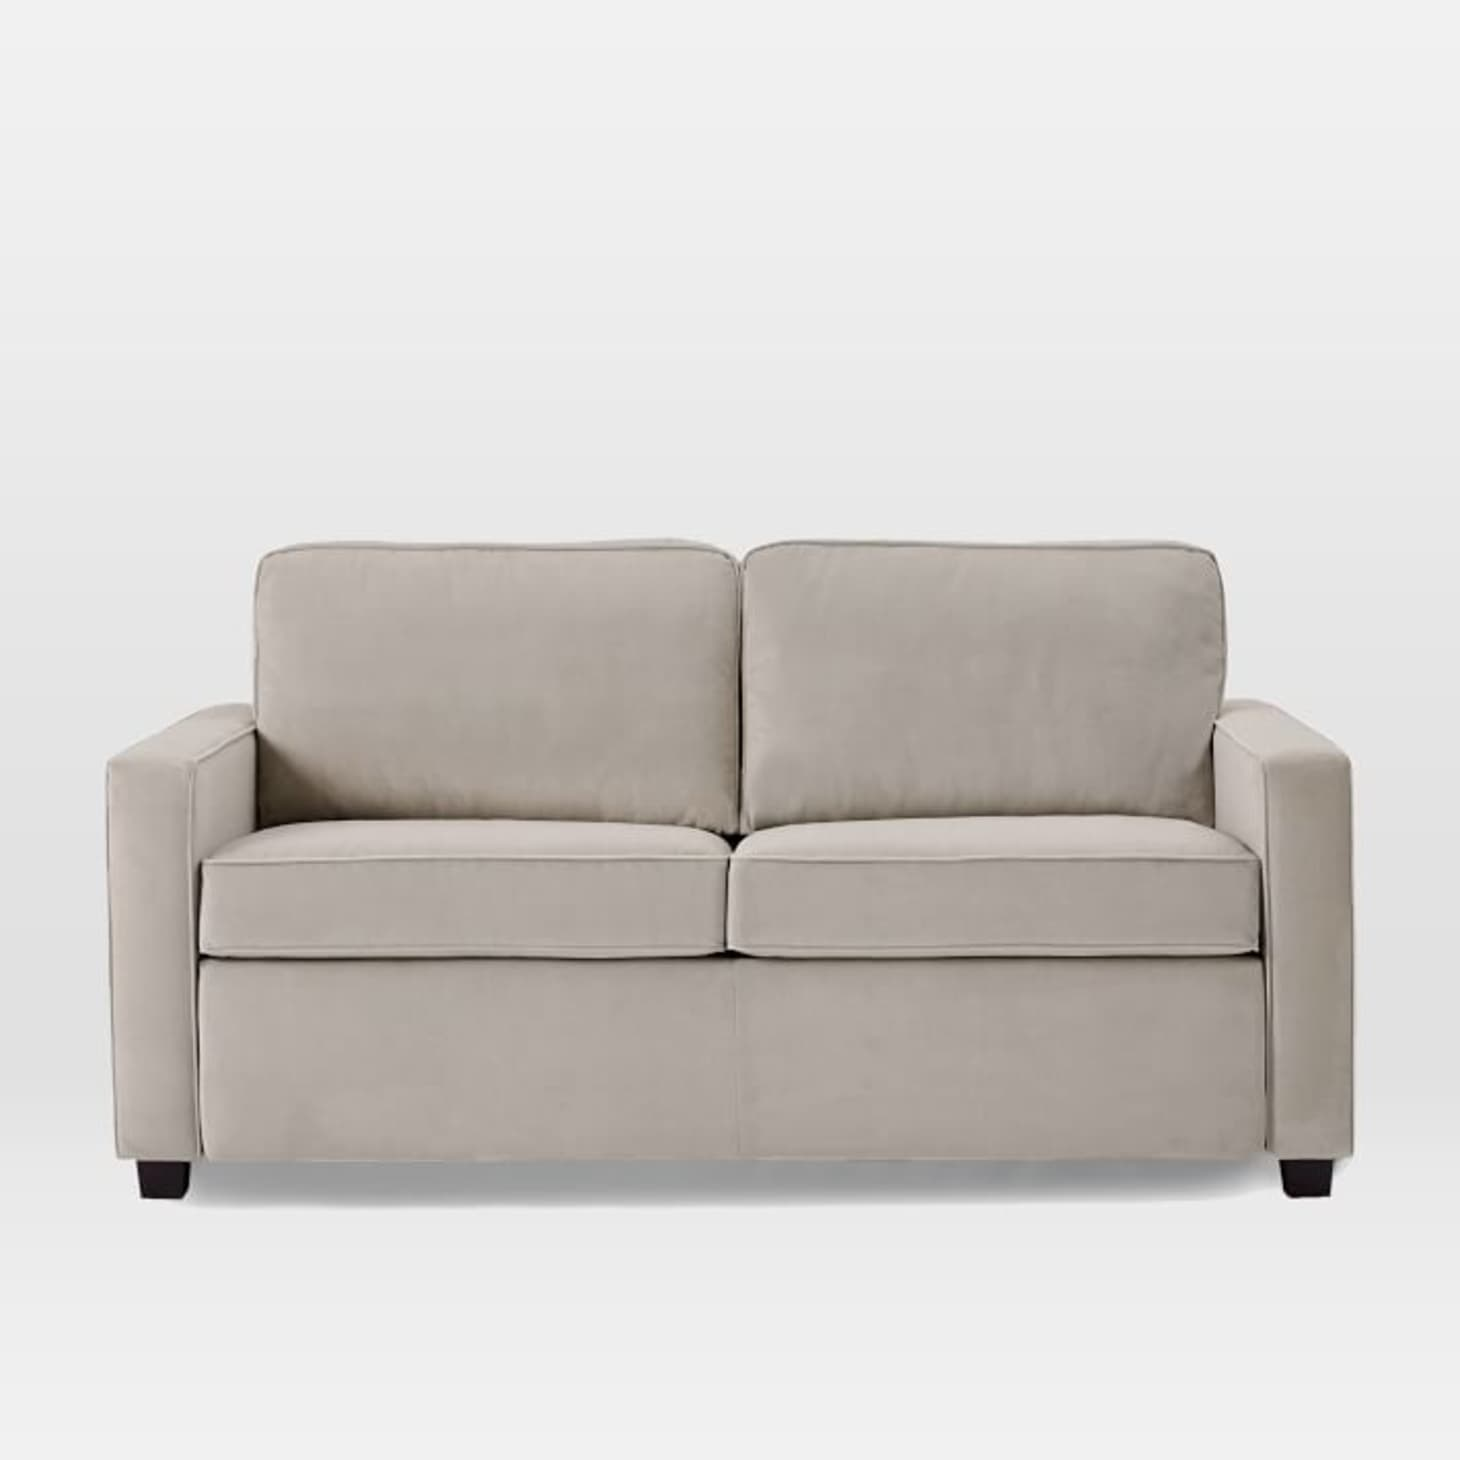 West Elm Sofa Sale Under 1000 Apartment Therapy